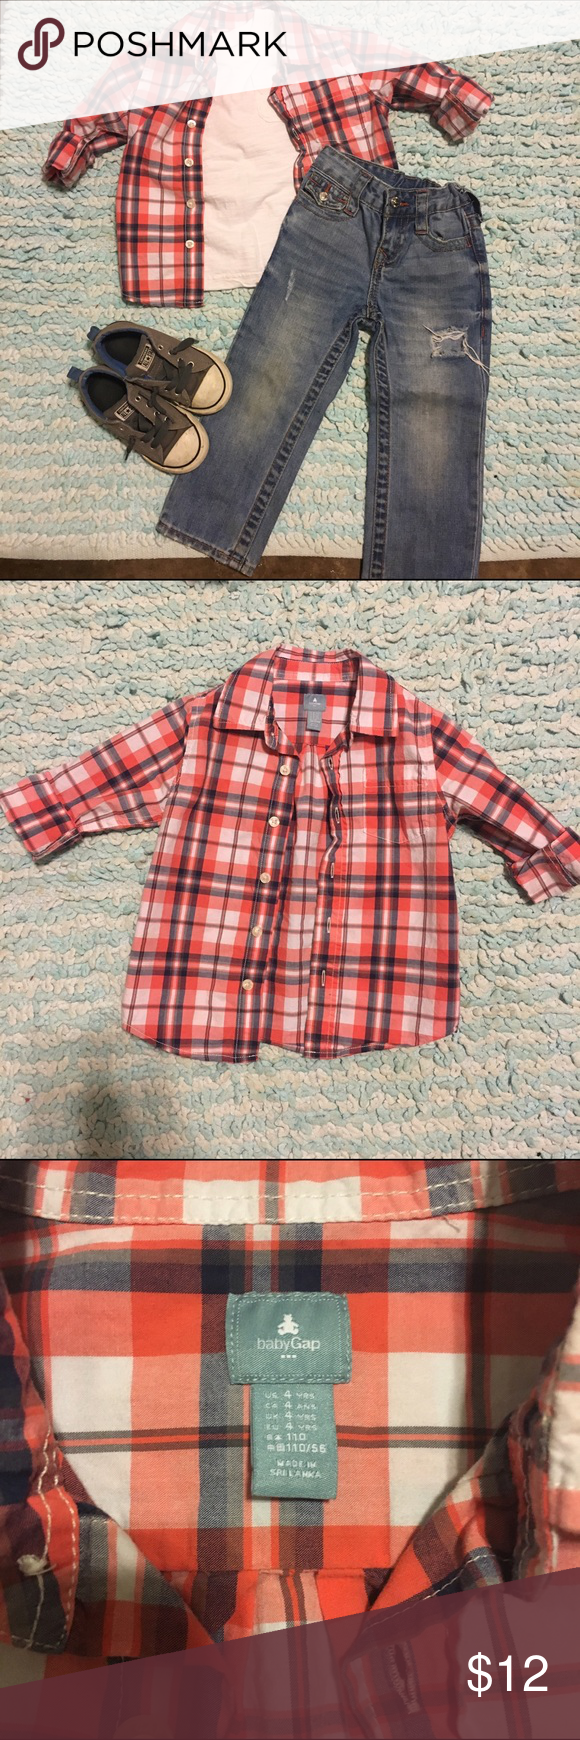 GAP boys long sleeved button up shirt GAP long sleeved button up shirt size 4. Only worn once. I will bundle all items in the picture, I'm just listing them separately for now. GAP Shirts & Tops Button Down Shirts